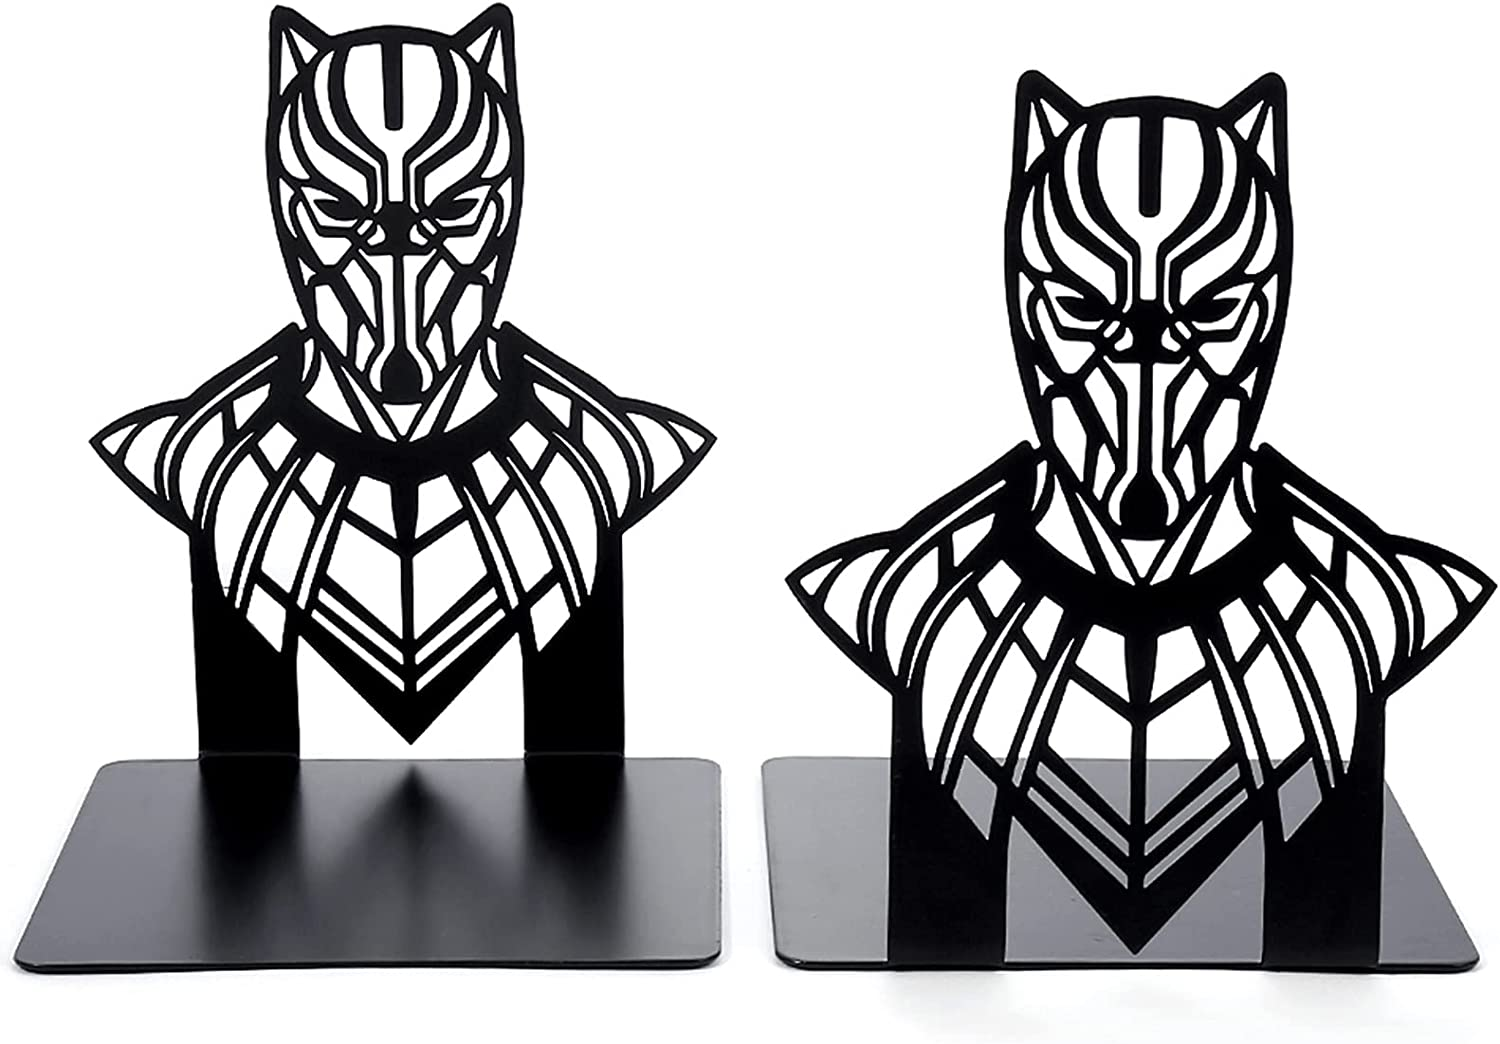 Metal Bookend, Superheros Decorative Non Skid Book Ends Stand, Book Stopper for Home/ Office Decor/ Shelves Bookends, Metal Bookends for Shelves